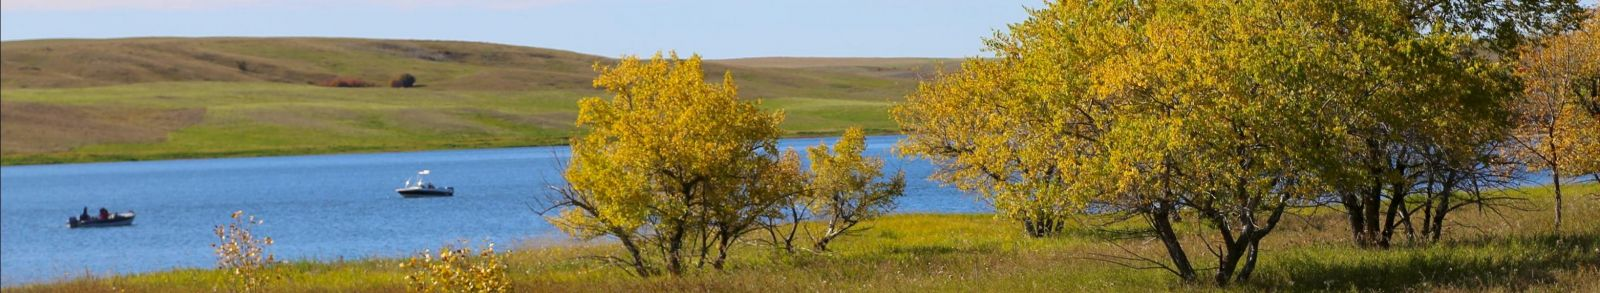 Boats on Lake Diefenbaker